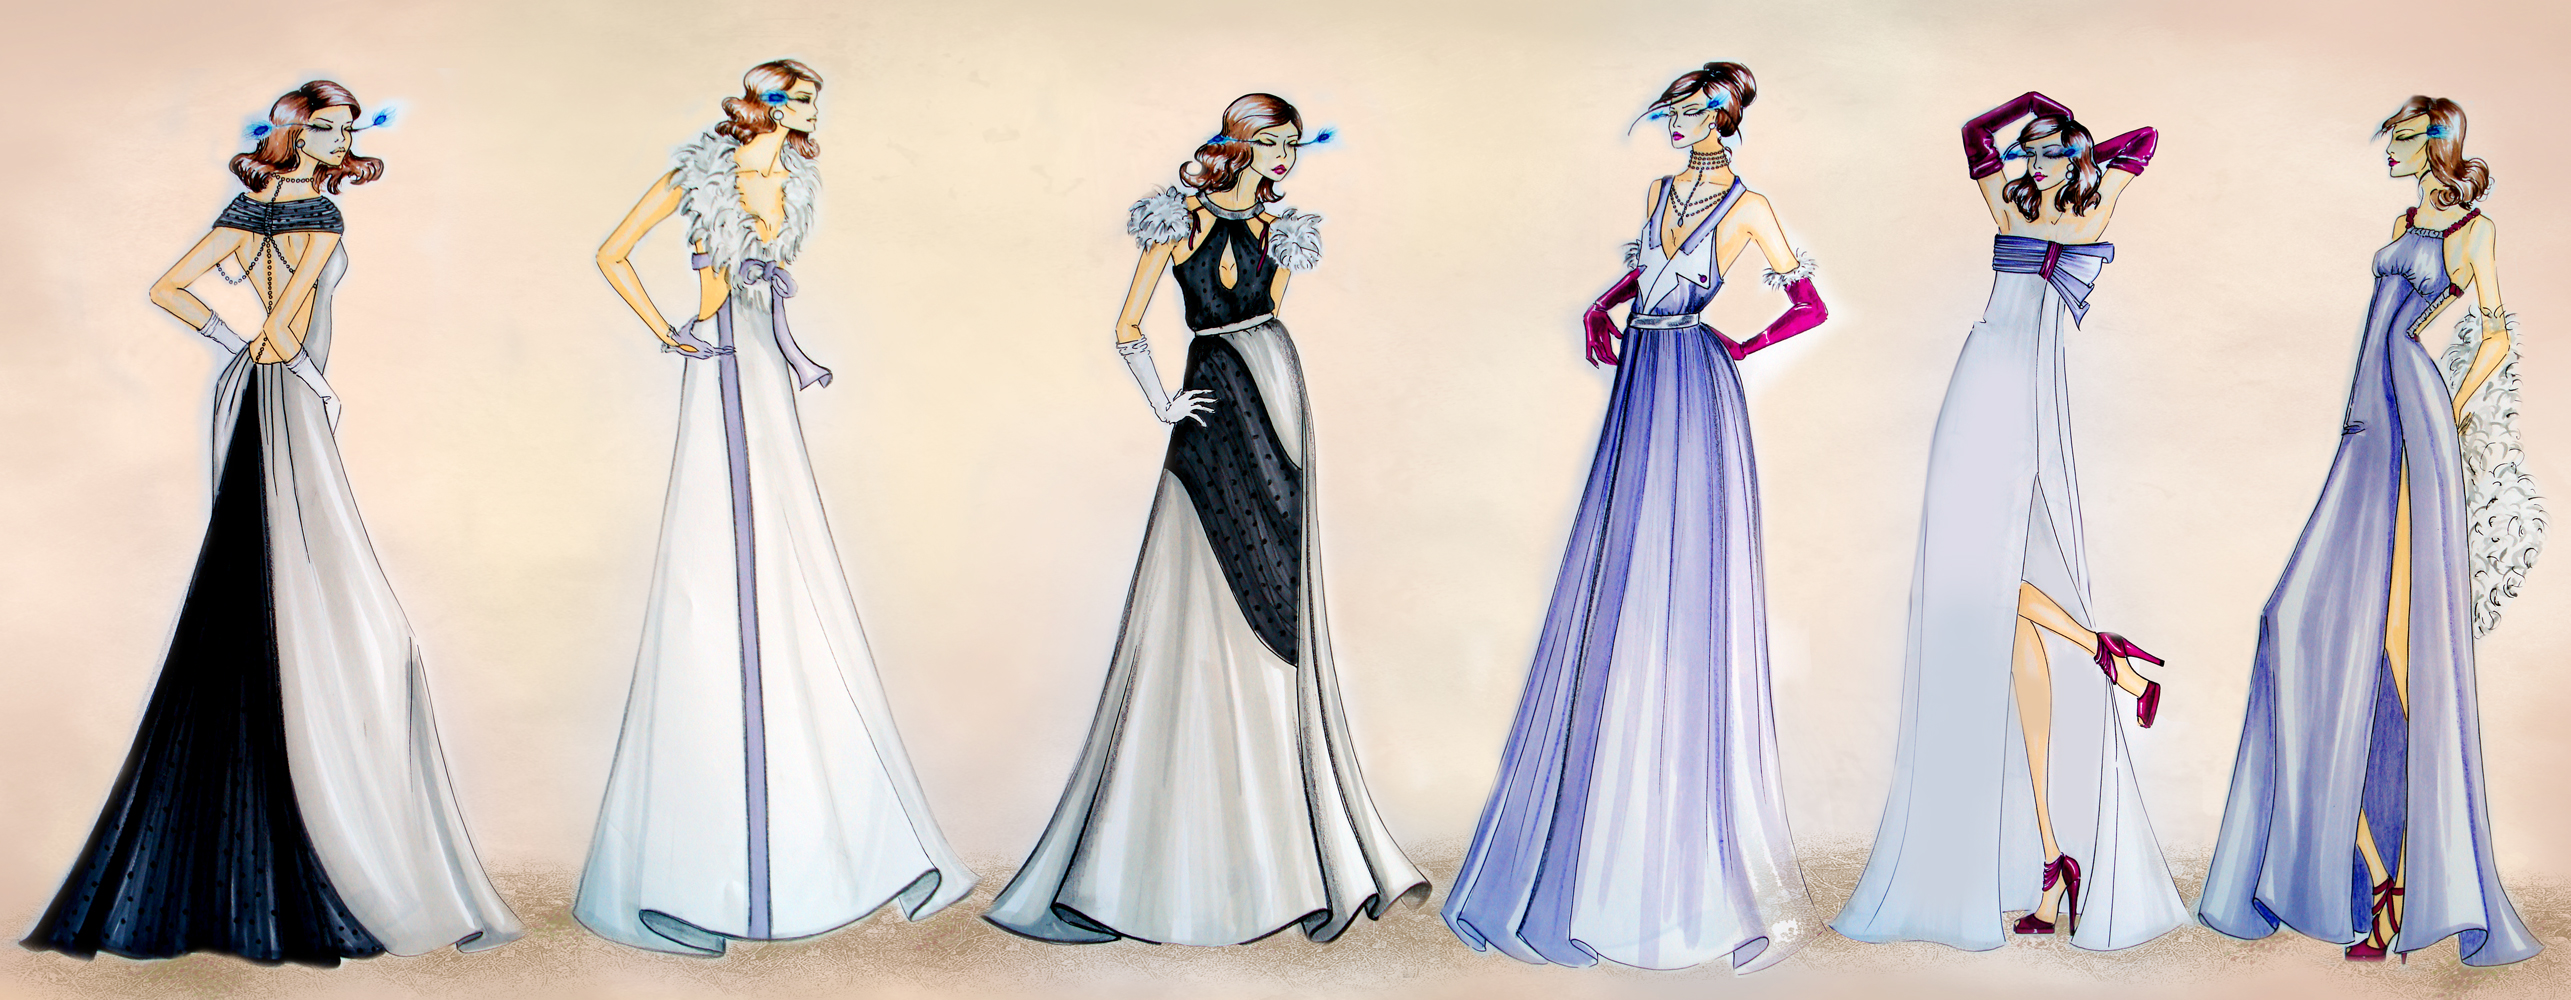 Design Collab With Vivette 30s Fashion Collection By Basaktinli On Deviantart